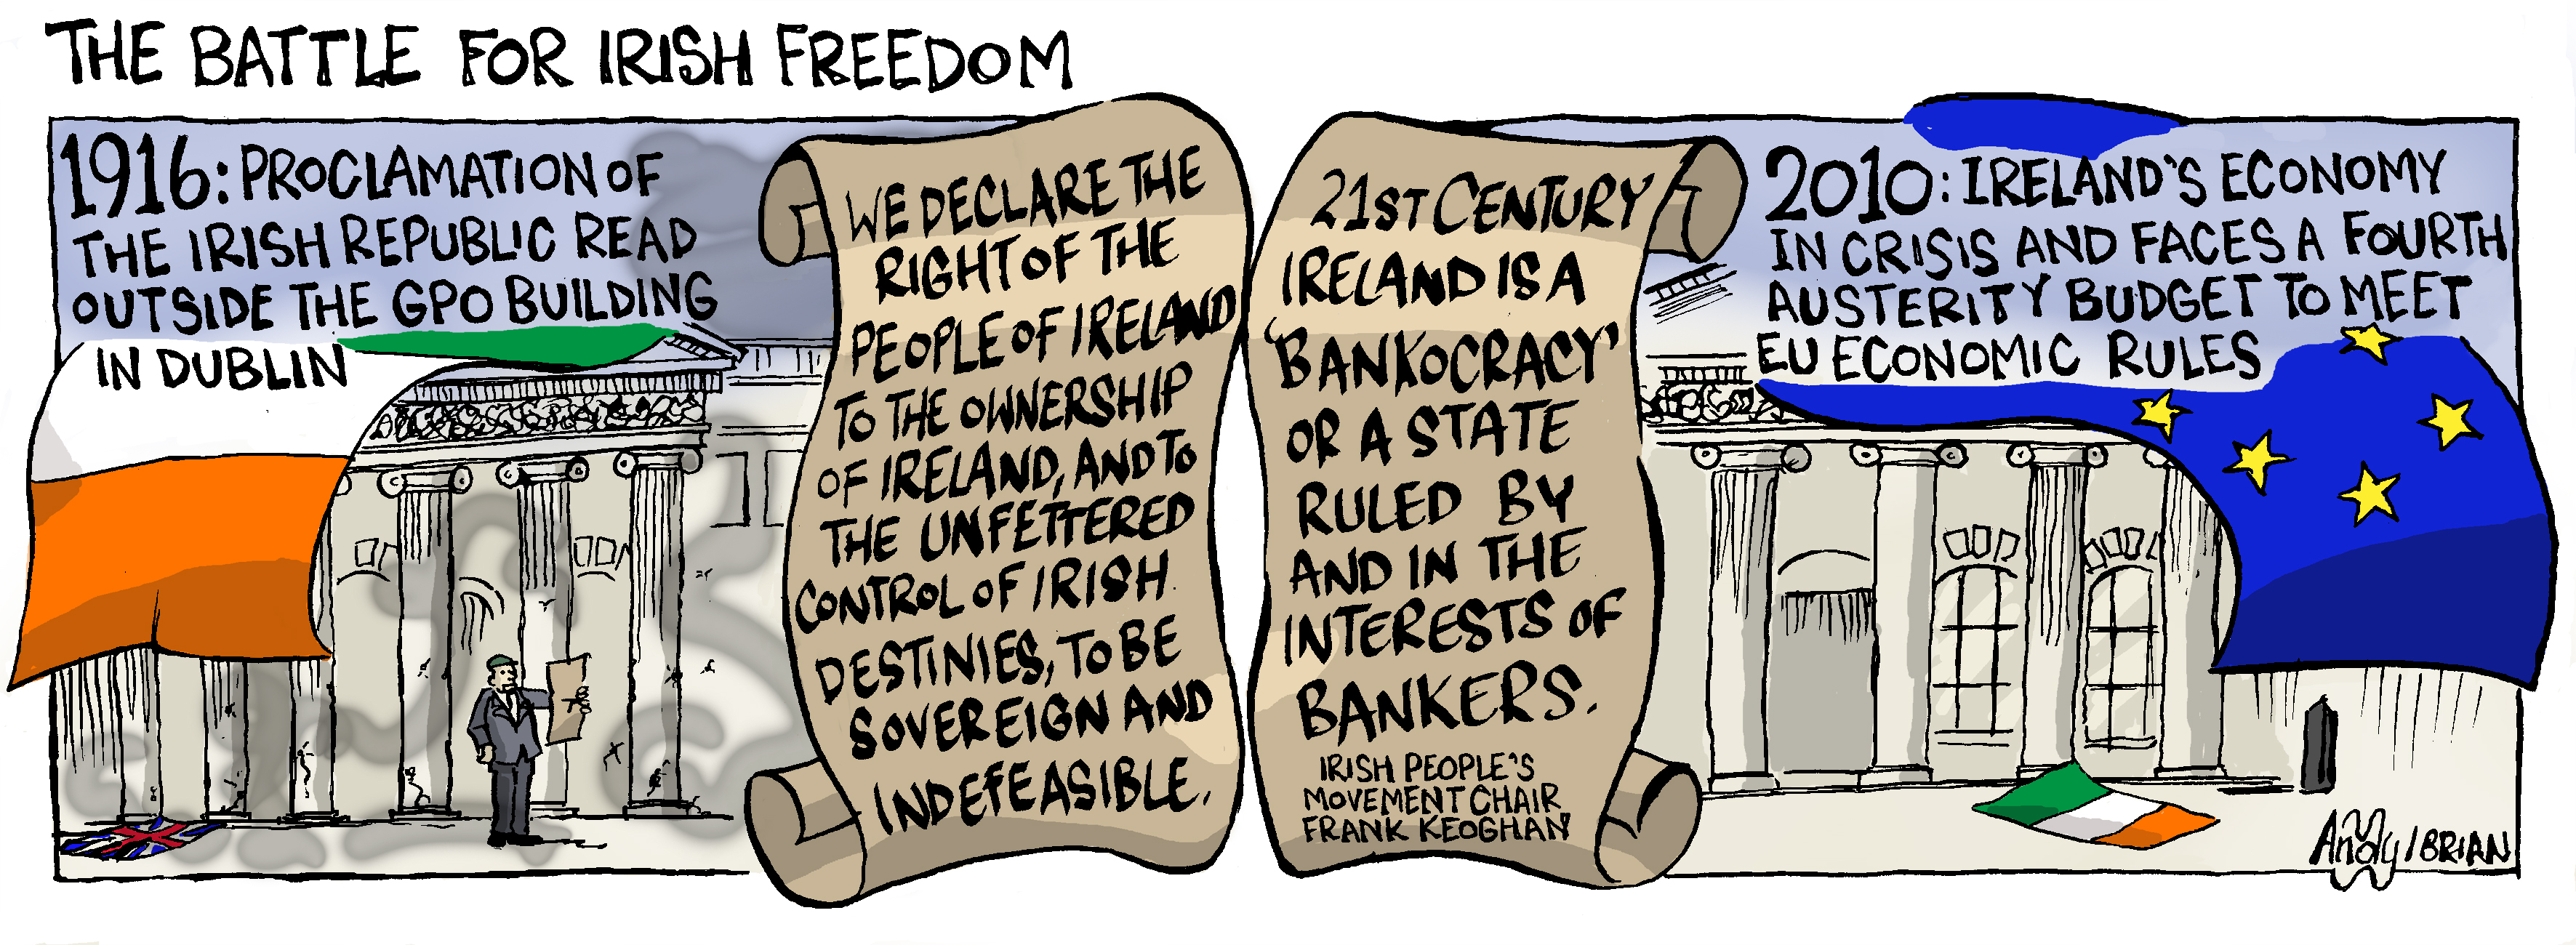 Ireland's independence lost under ECB&IMF dominance